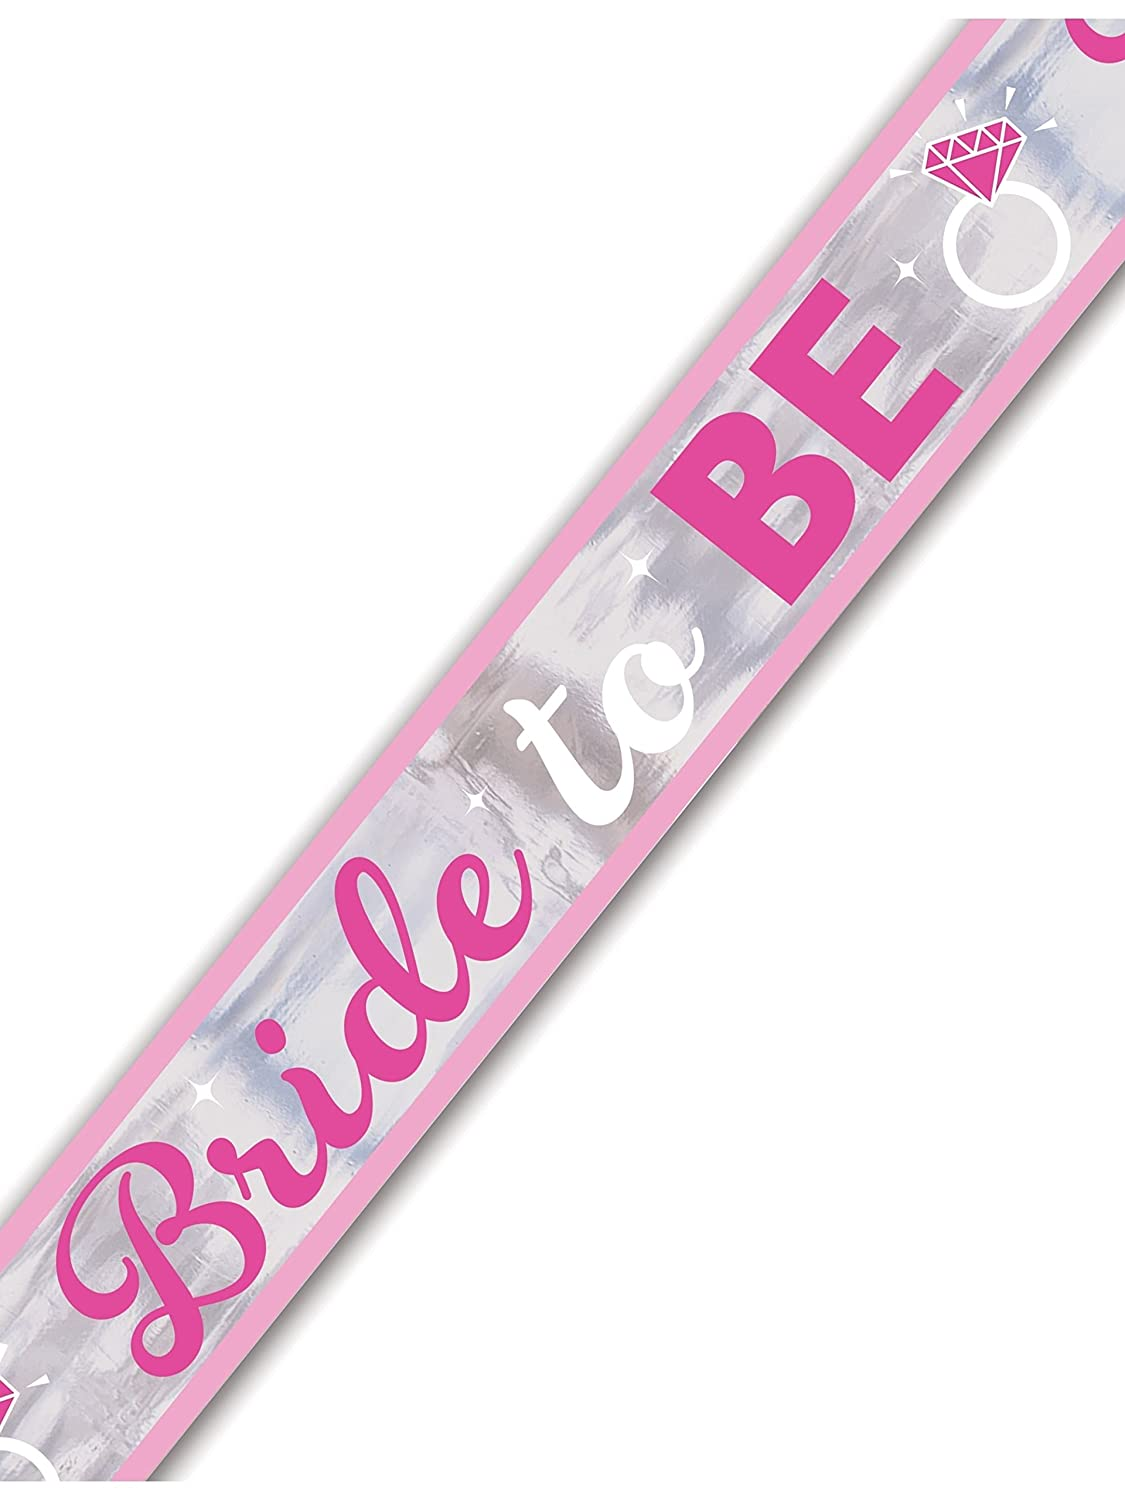 Amscan 9900535 7 m Hen Party Bride to Be Foil Banner Amscan Internatinal Ltd